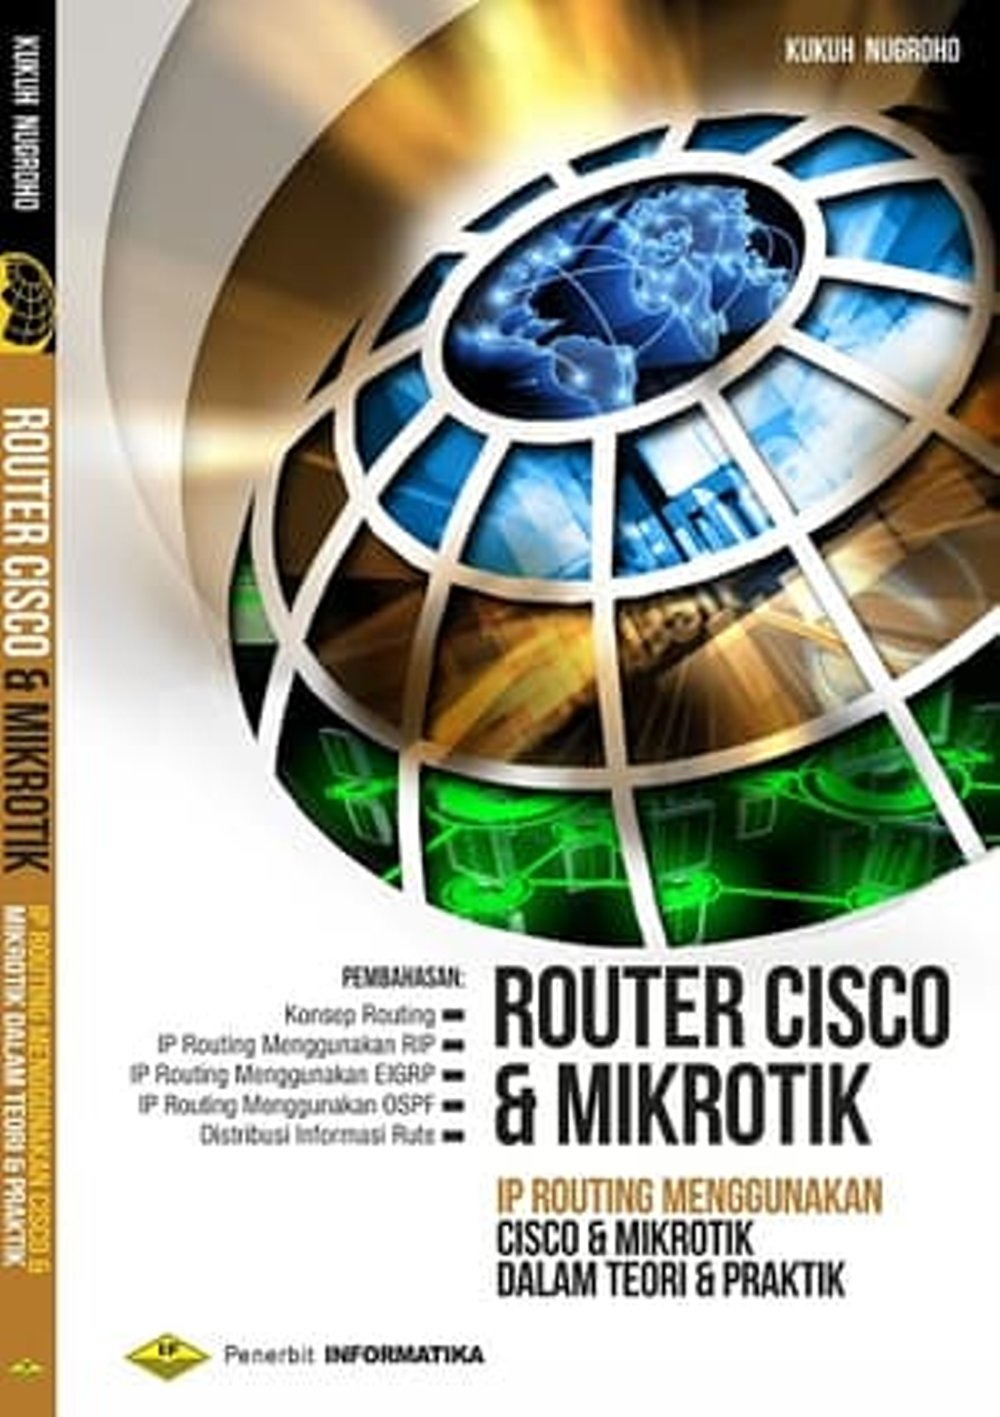 Router Cisco Dan Mikrotik